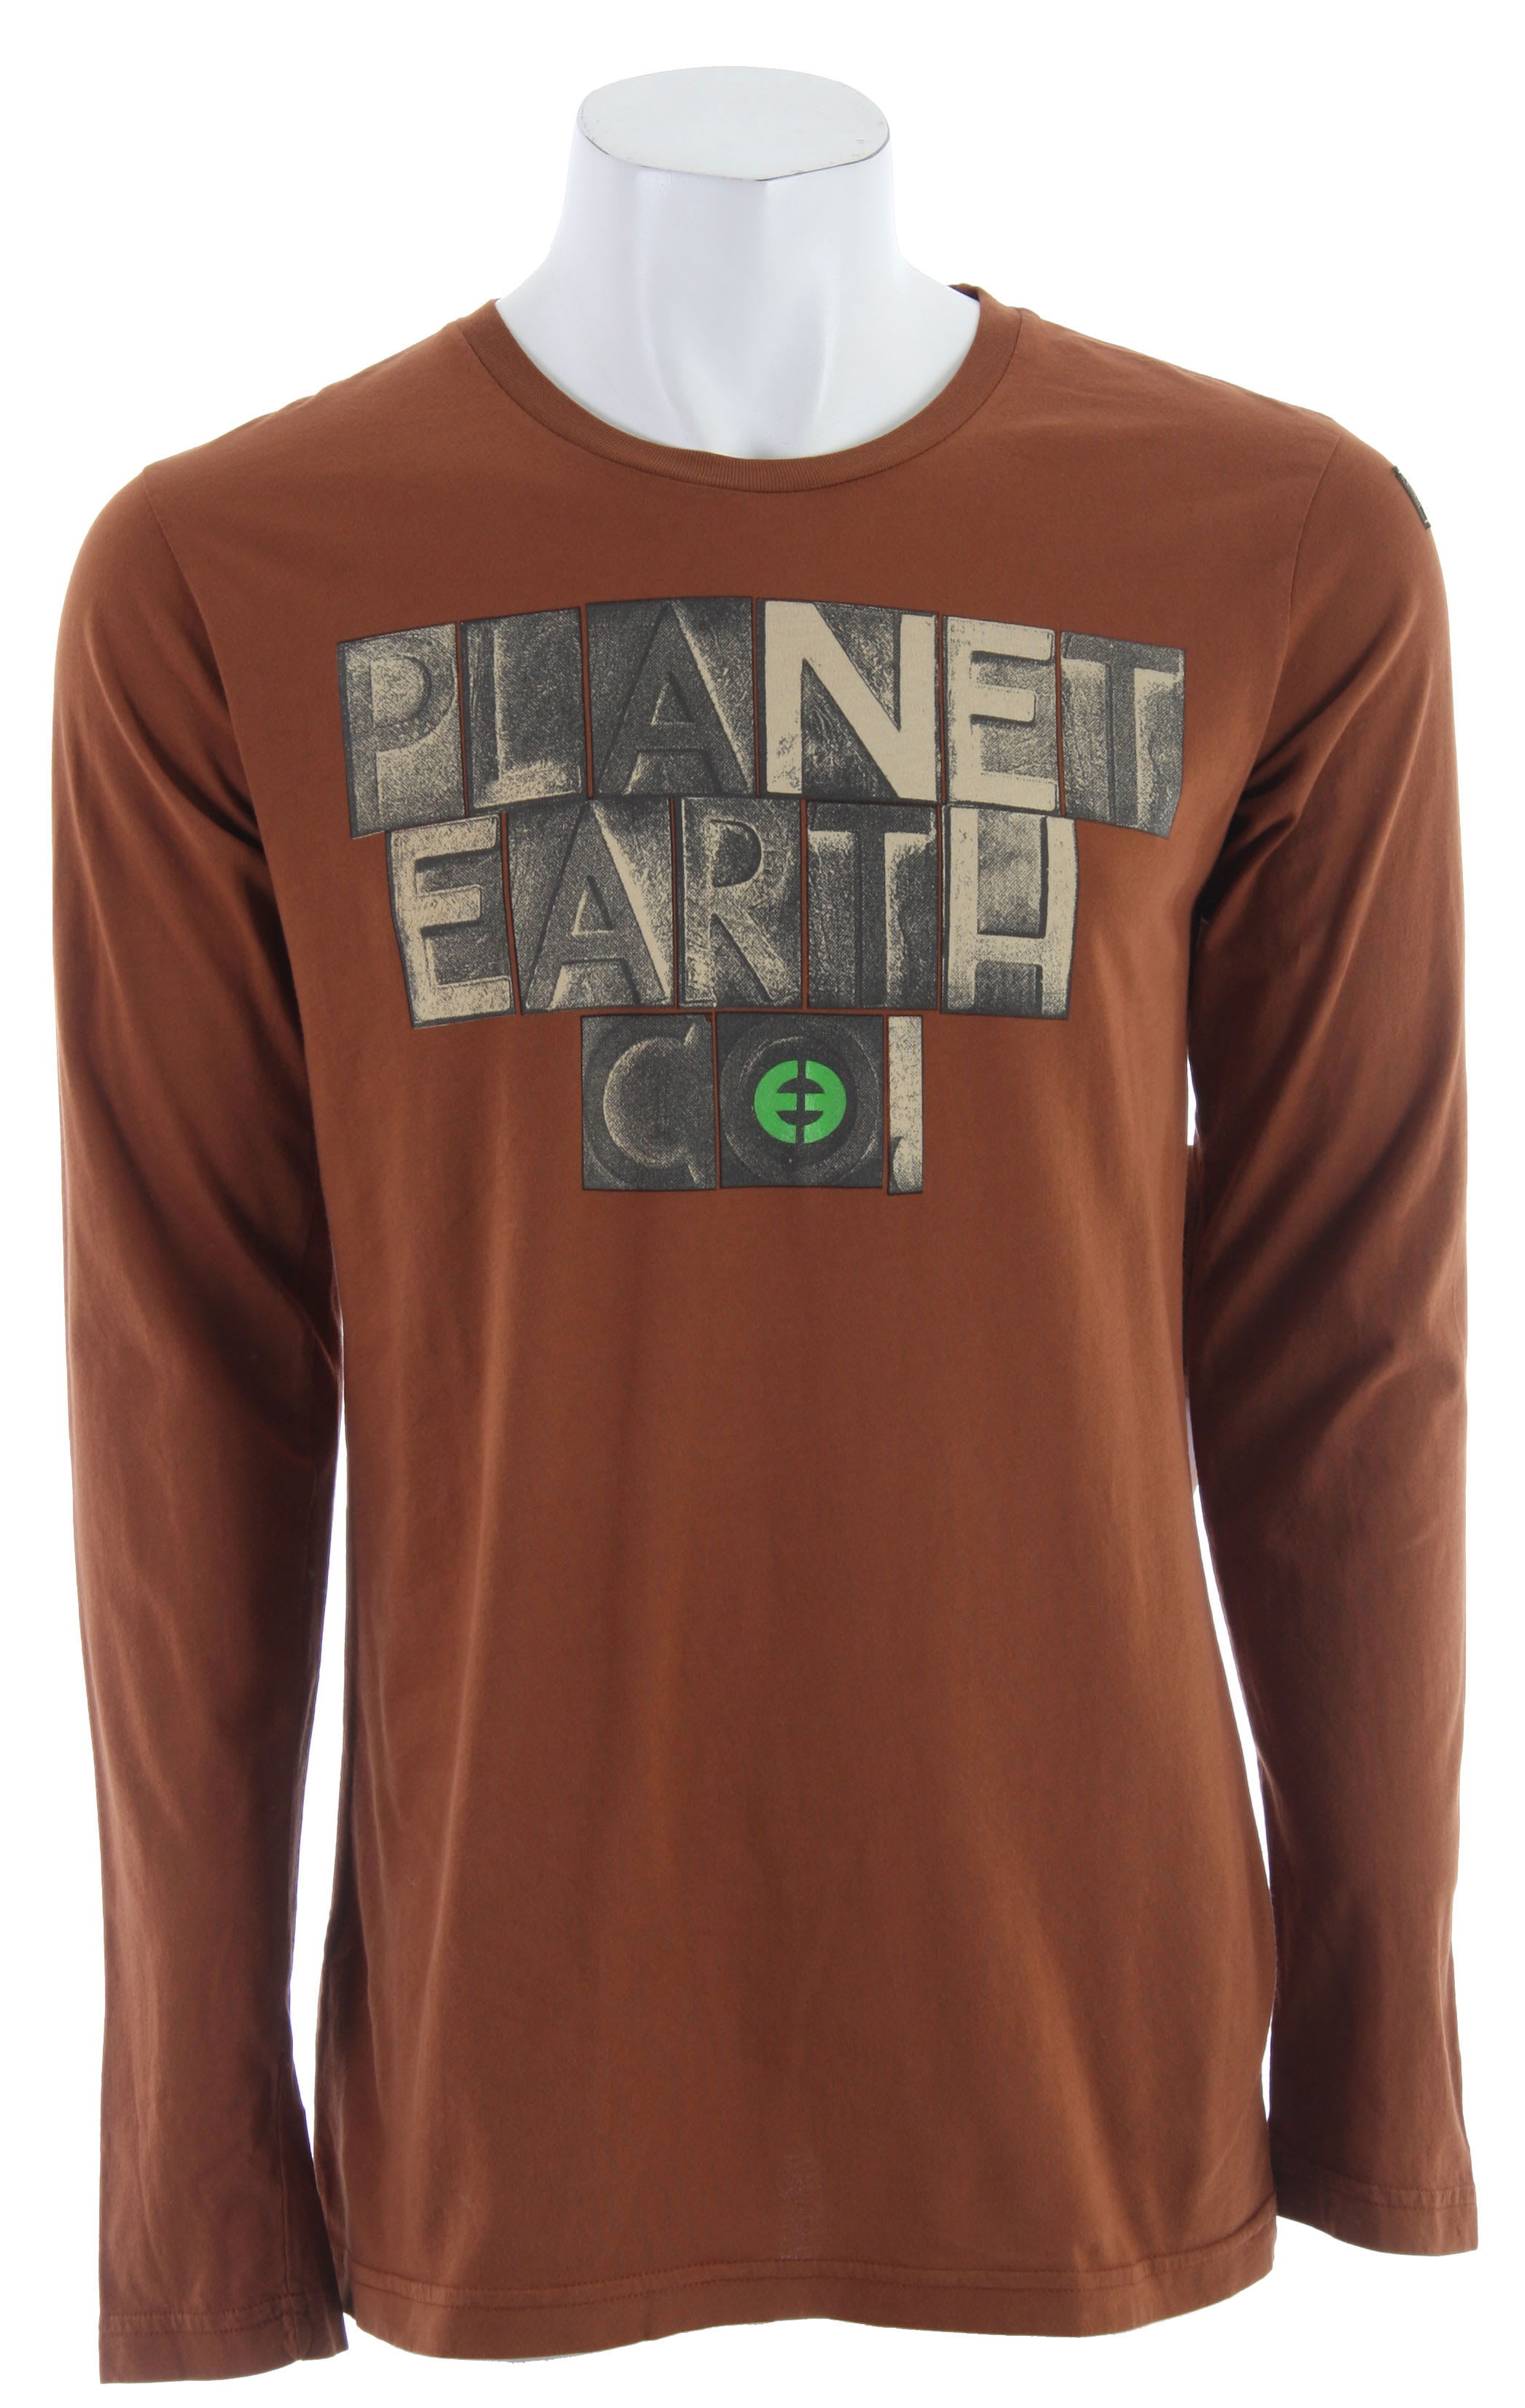 On sale planet earth foundry l s t shirt up to 70 off for Foundry men s polo shirts